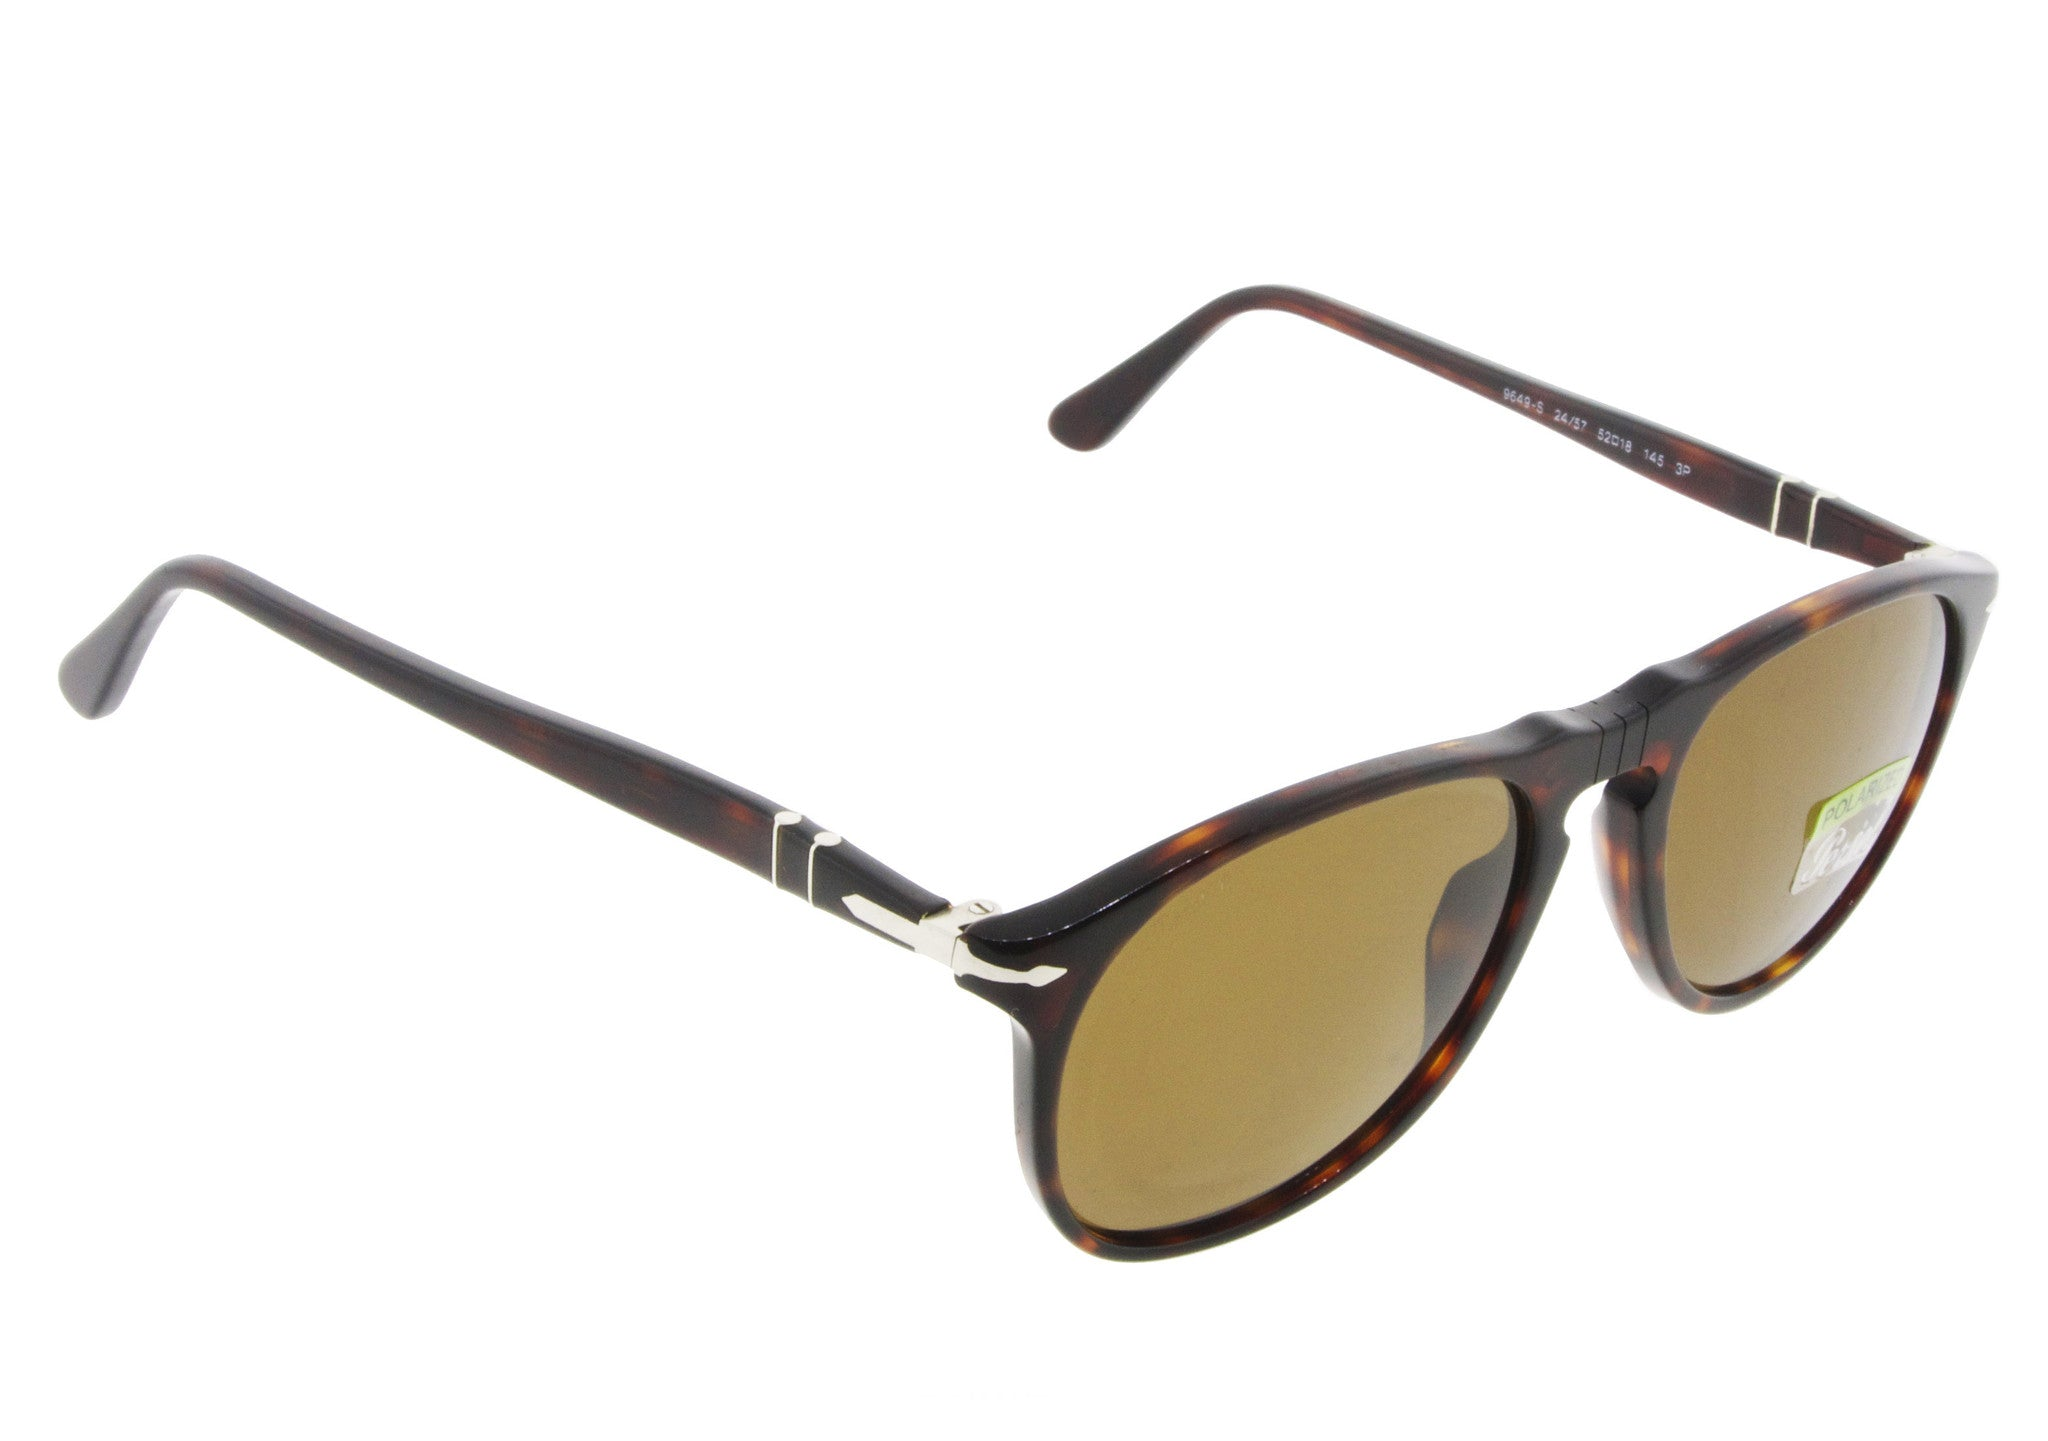 Persol Sunglasses 9649S 24/57 Havana with Brown Polarized Lenses ...